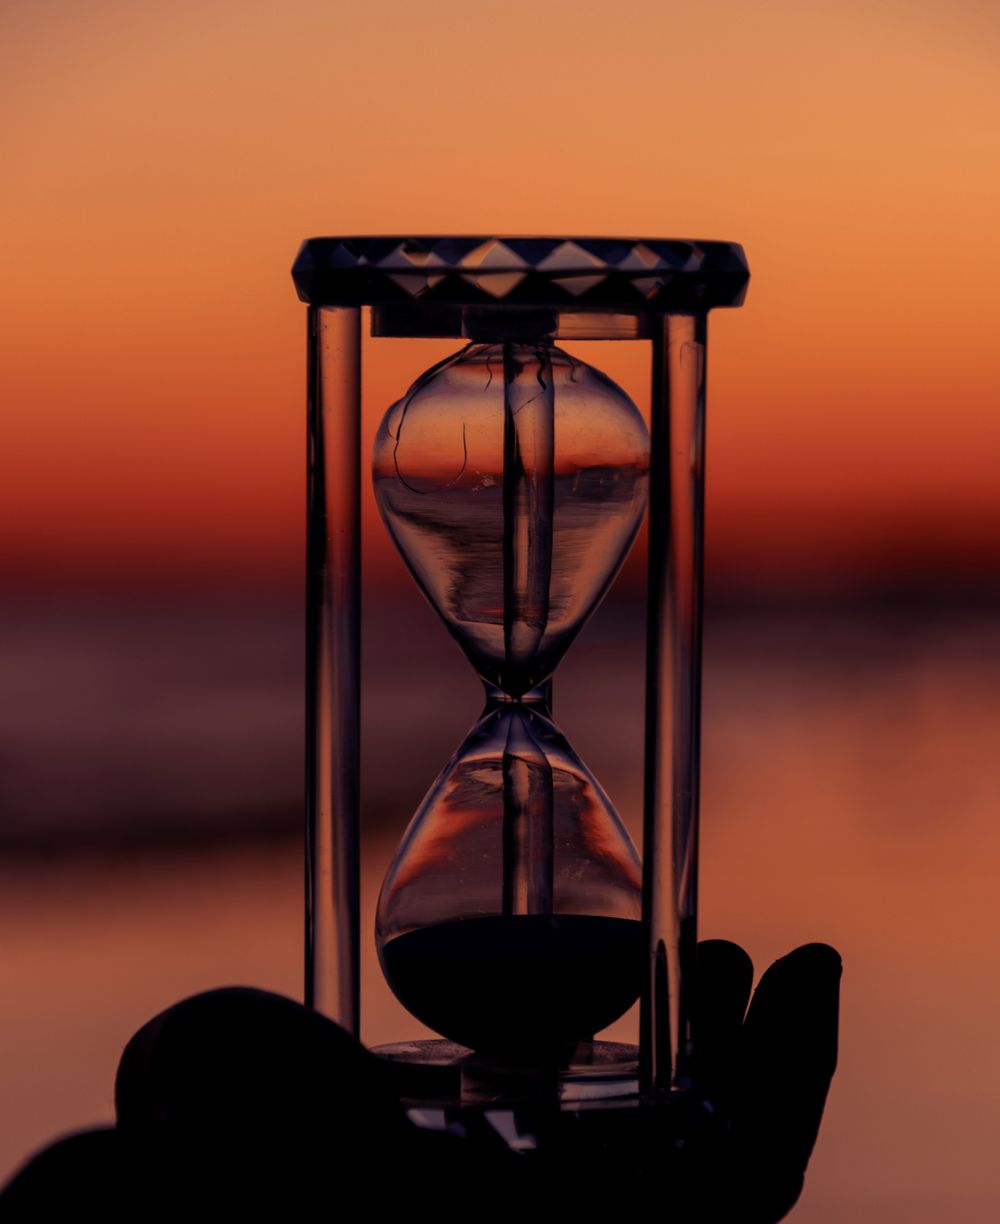 Piece of Time